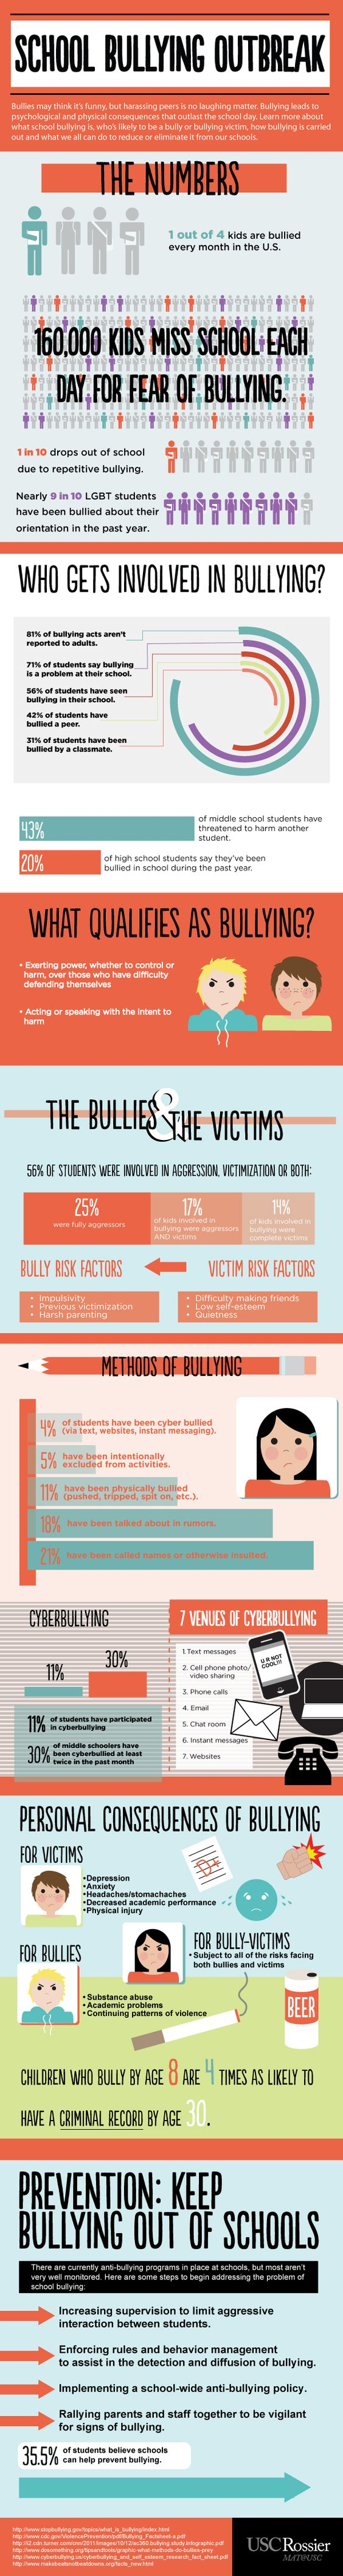 School bullying outbreak infograph.: